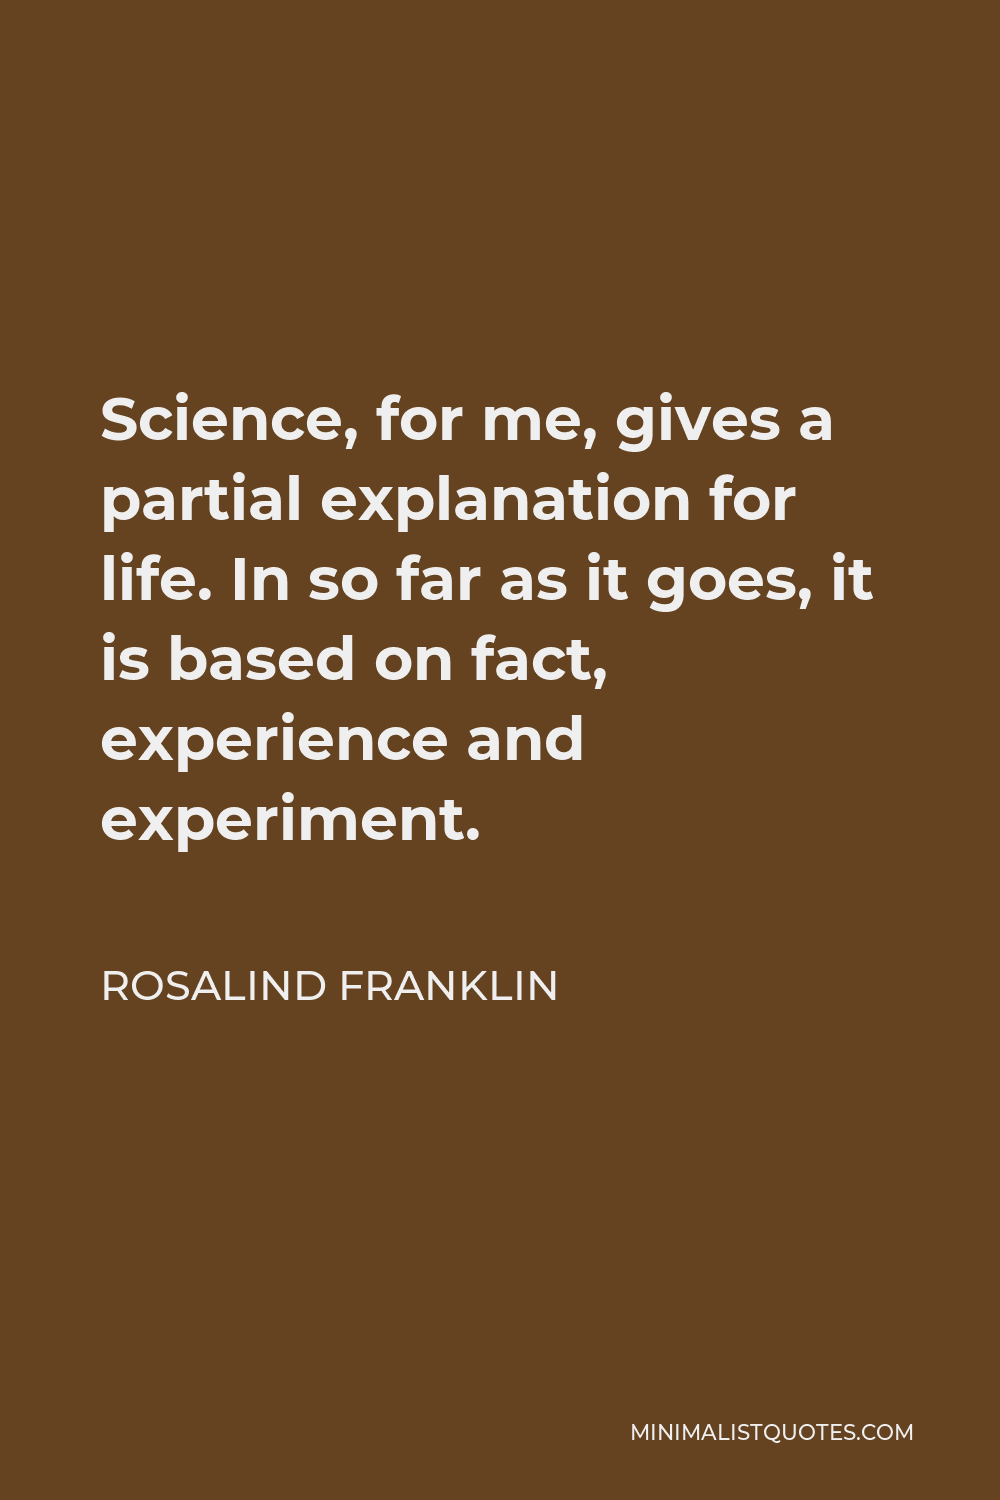 Rosalind Franklin Quote - Science, for me, gives a partial explanation for life. In so far as it goes, it is based on fact, experience and experiment.